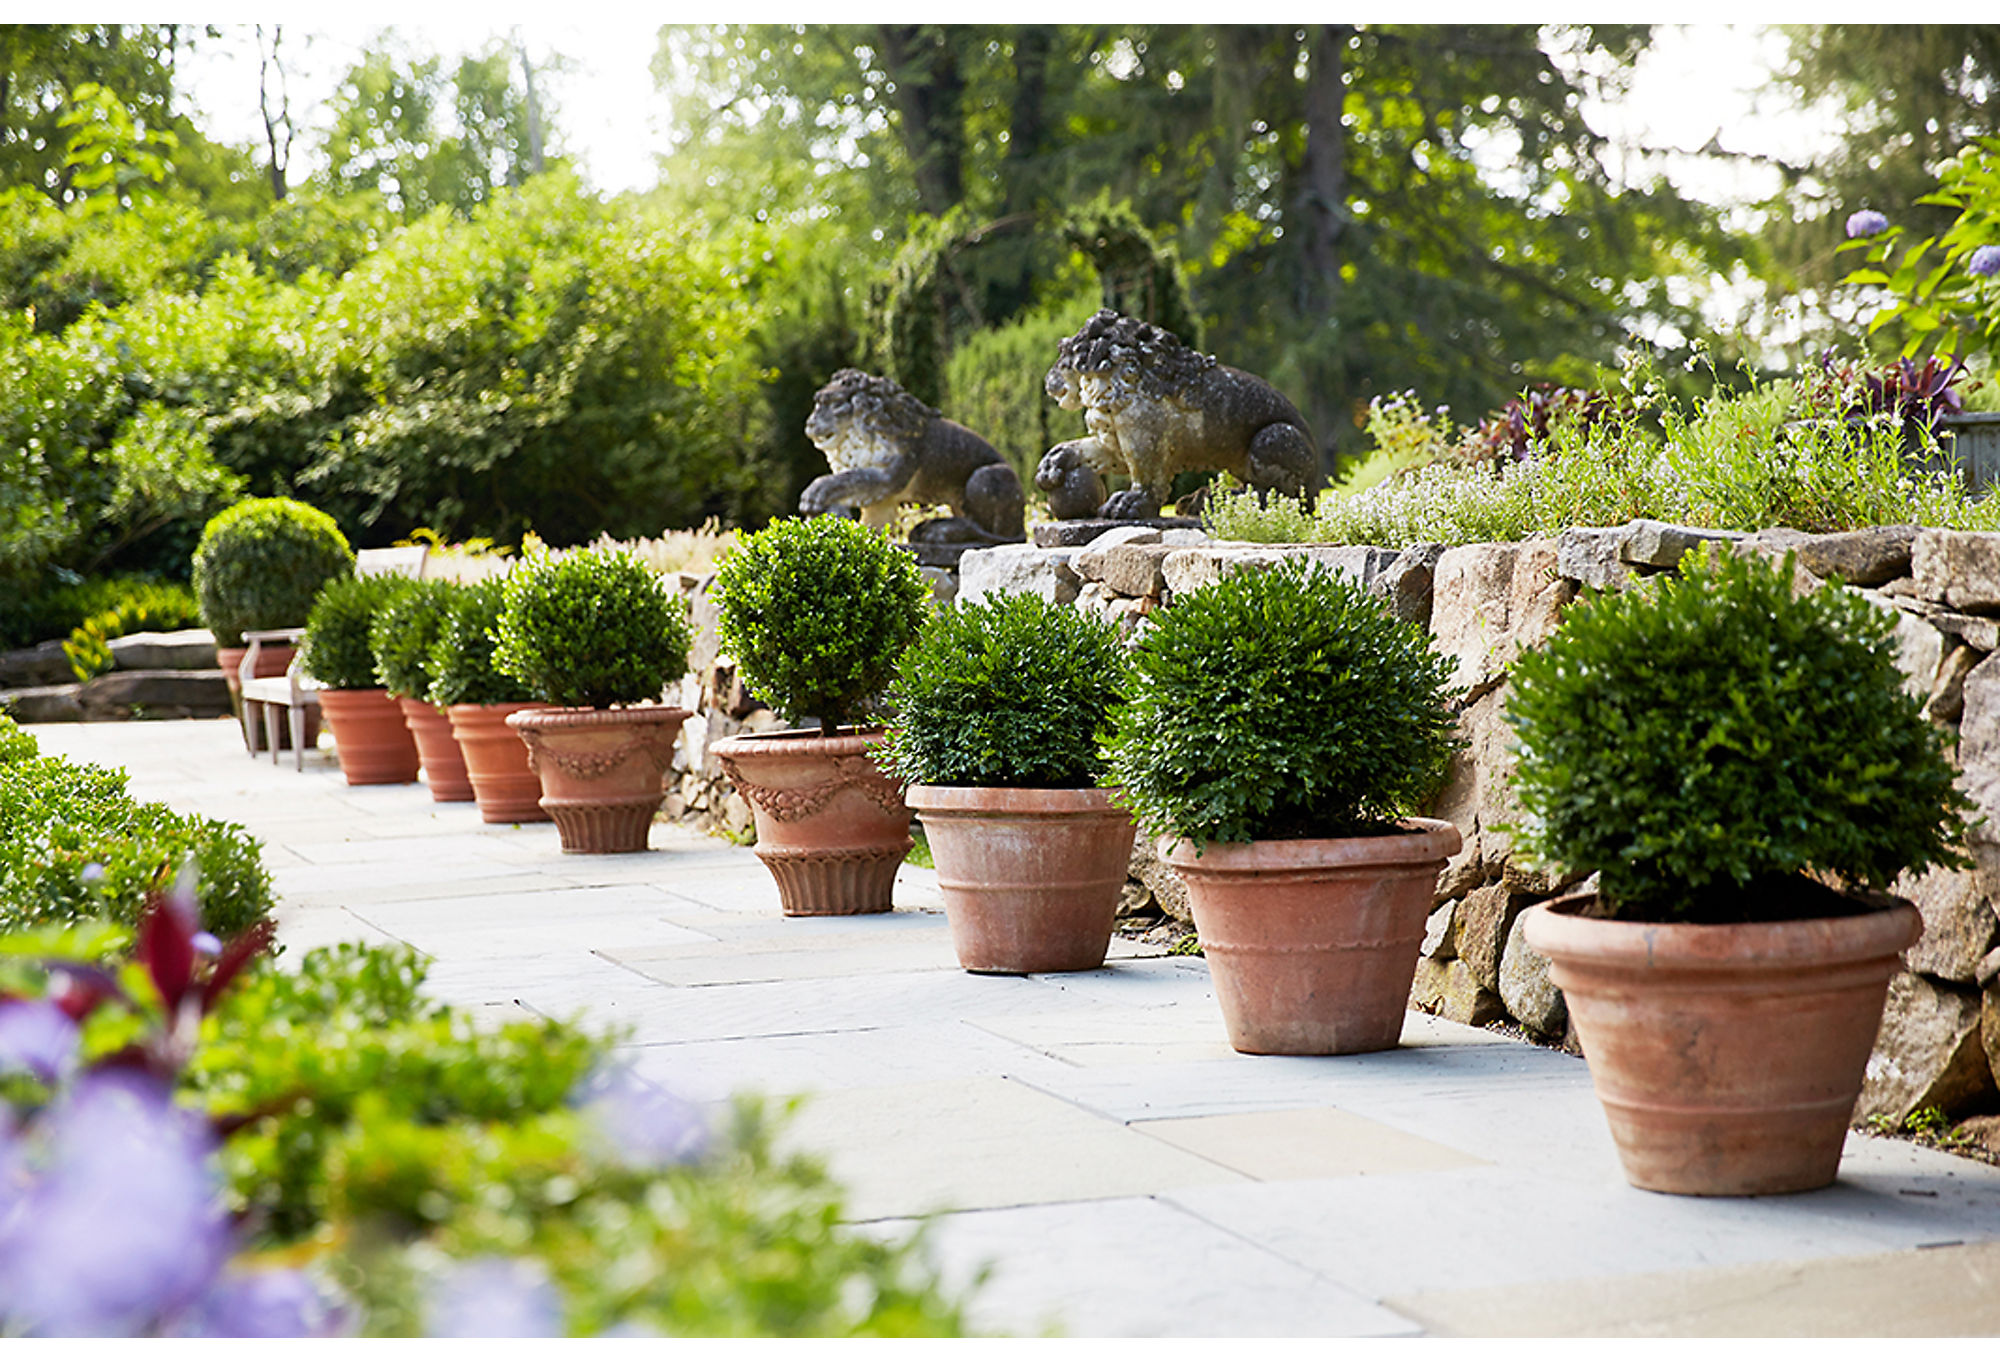 Designer Bunny Williams added a row of terracotta planters filled with boxwood trees to accent her garden design.